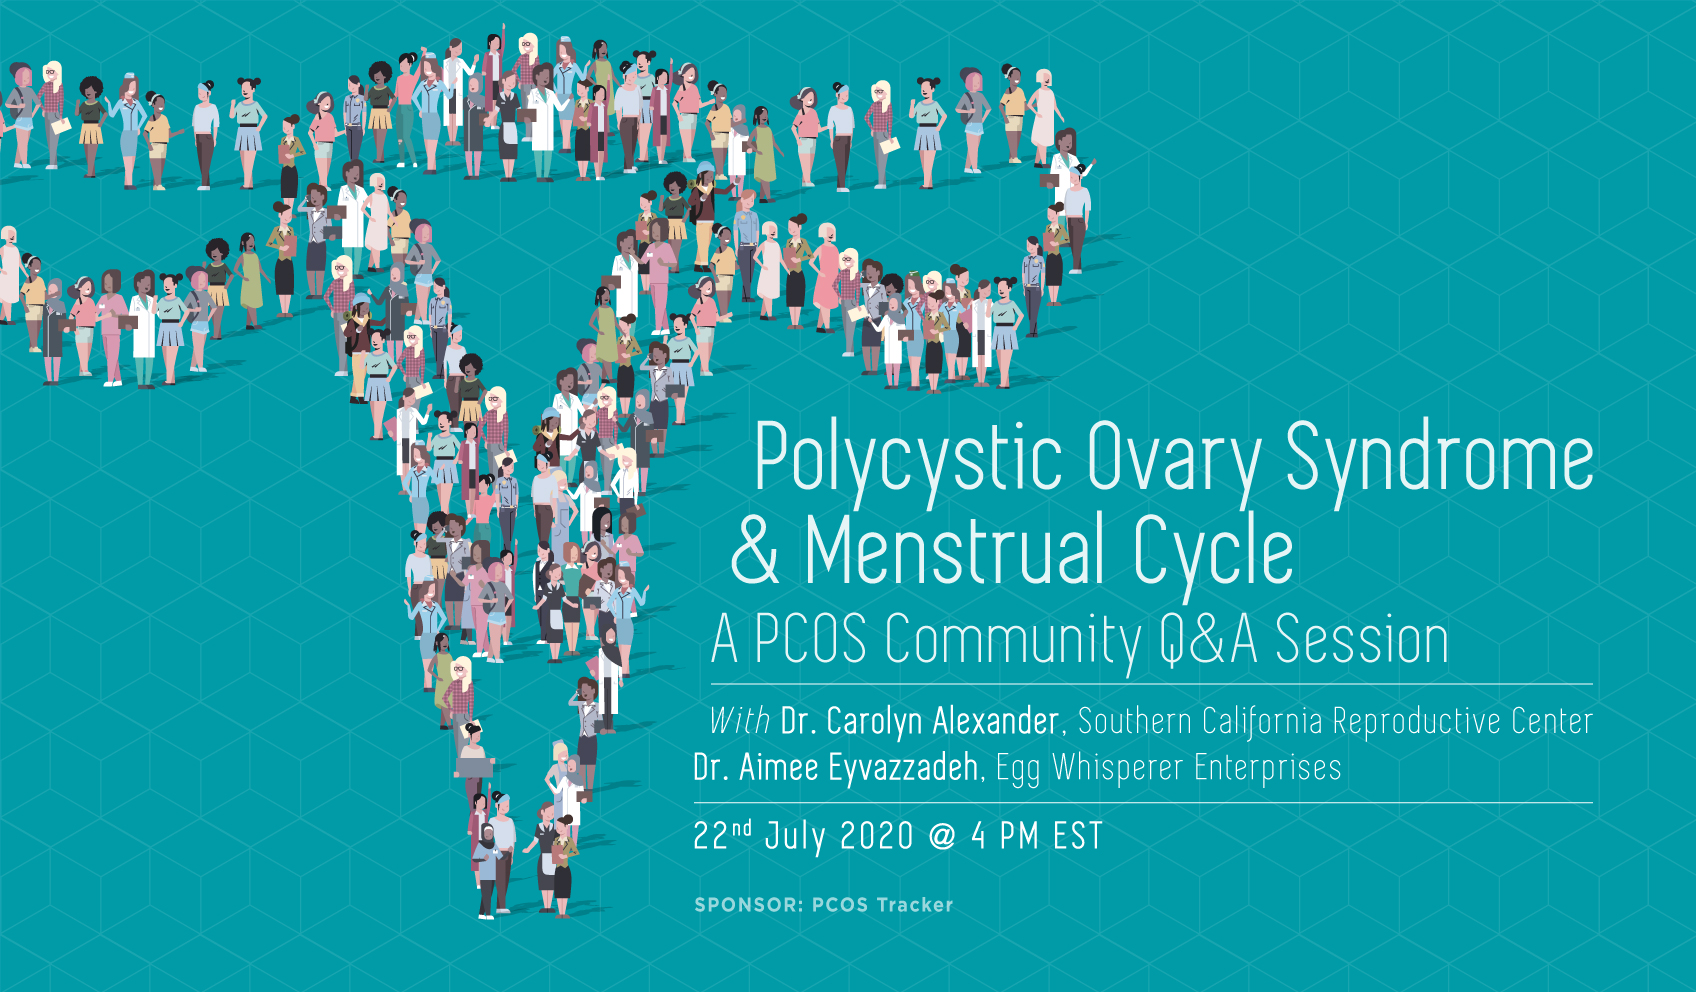 PCOS & Menstrual Cycle –  A PCOS Community Q&A Session